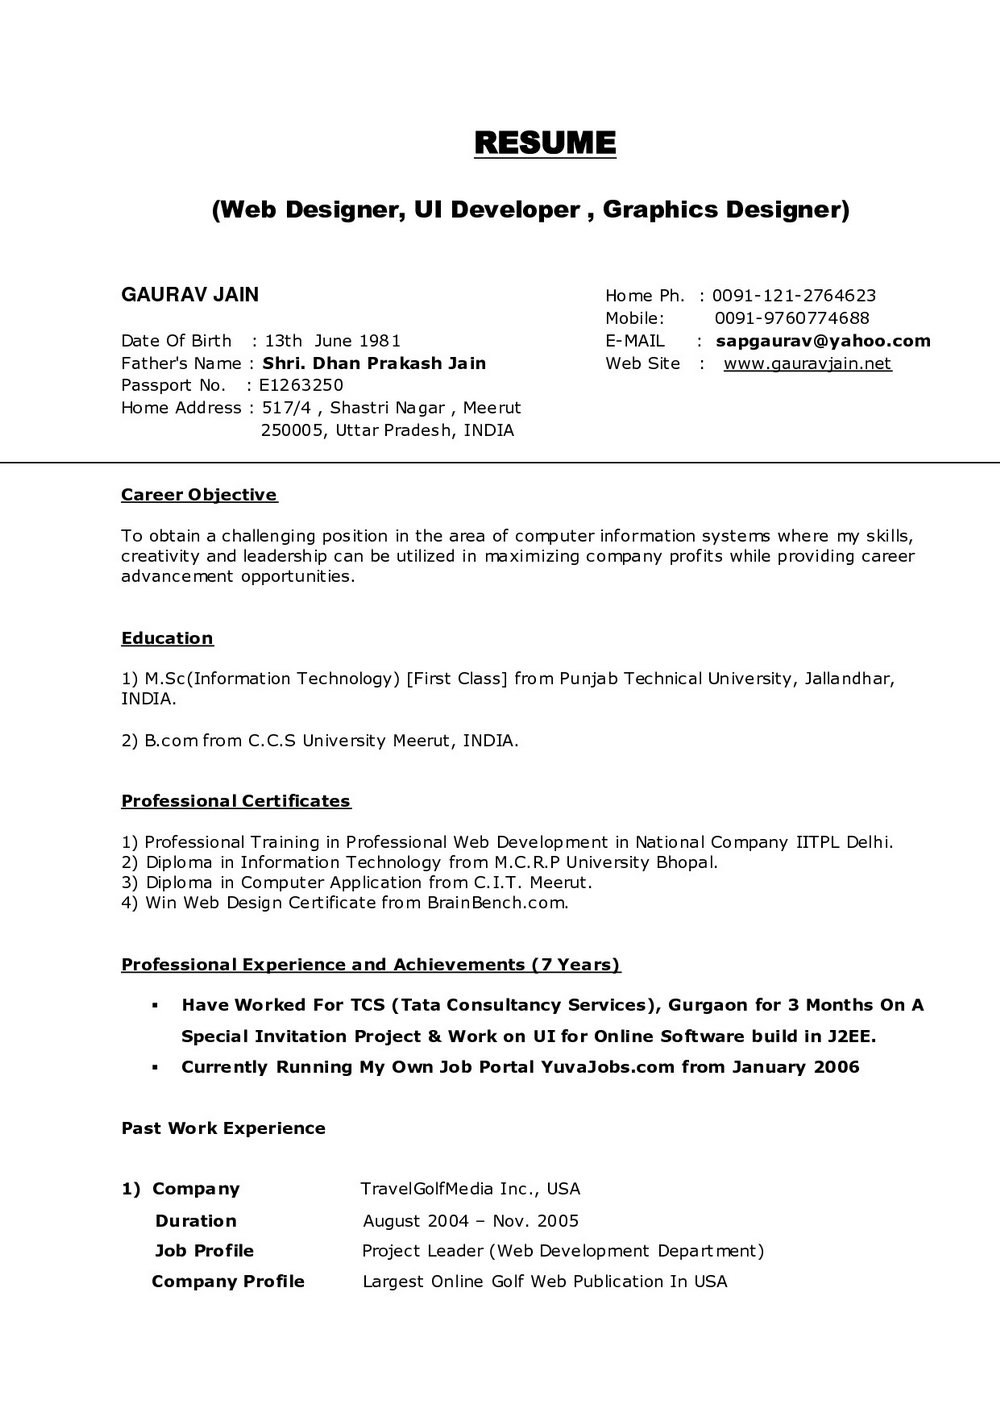 Free Resume Sample Download For Freshers